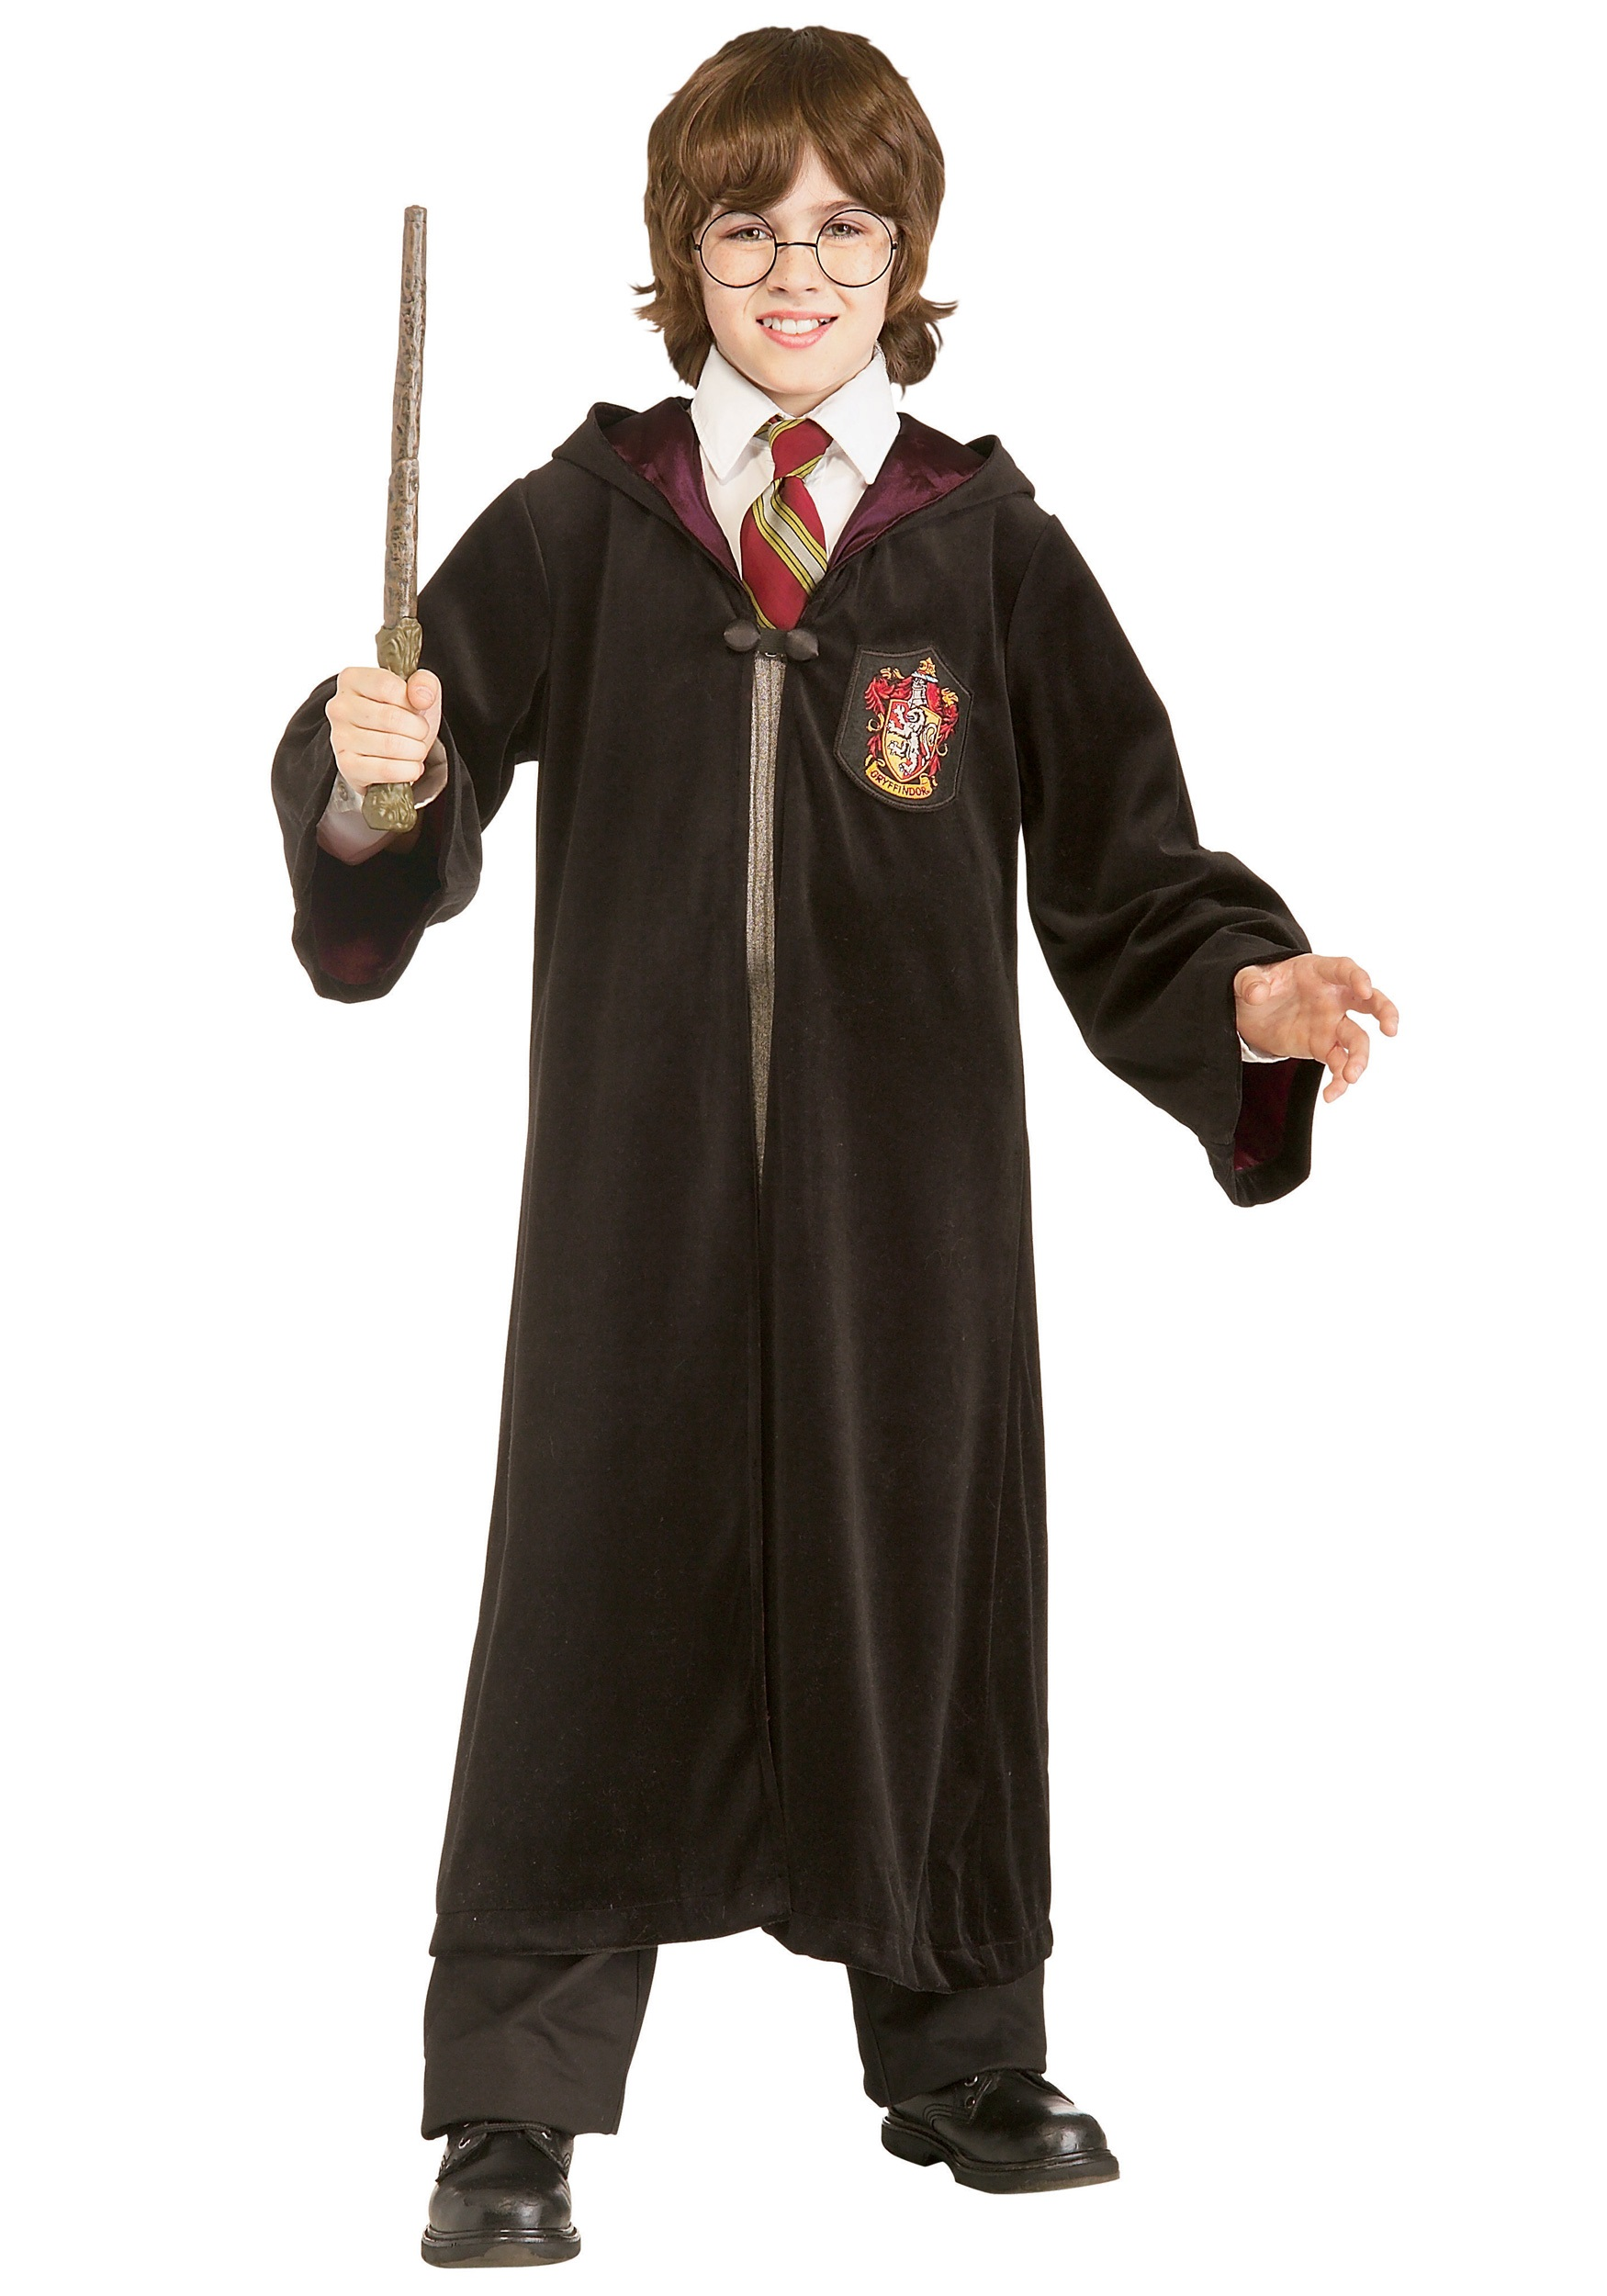 Authentic kids harry potter movie costume for Children s halloween costume ideas